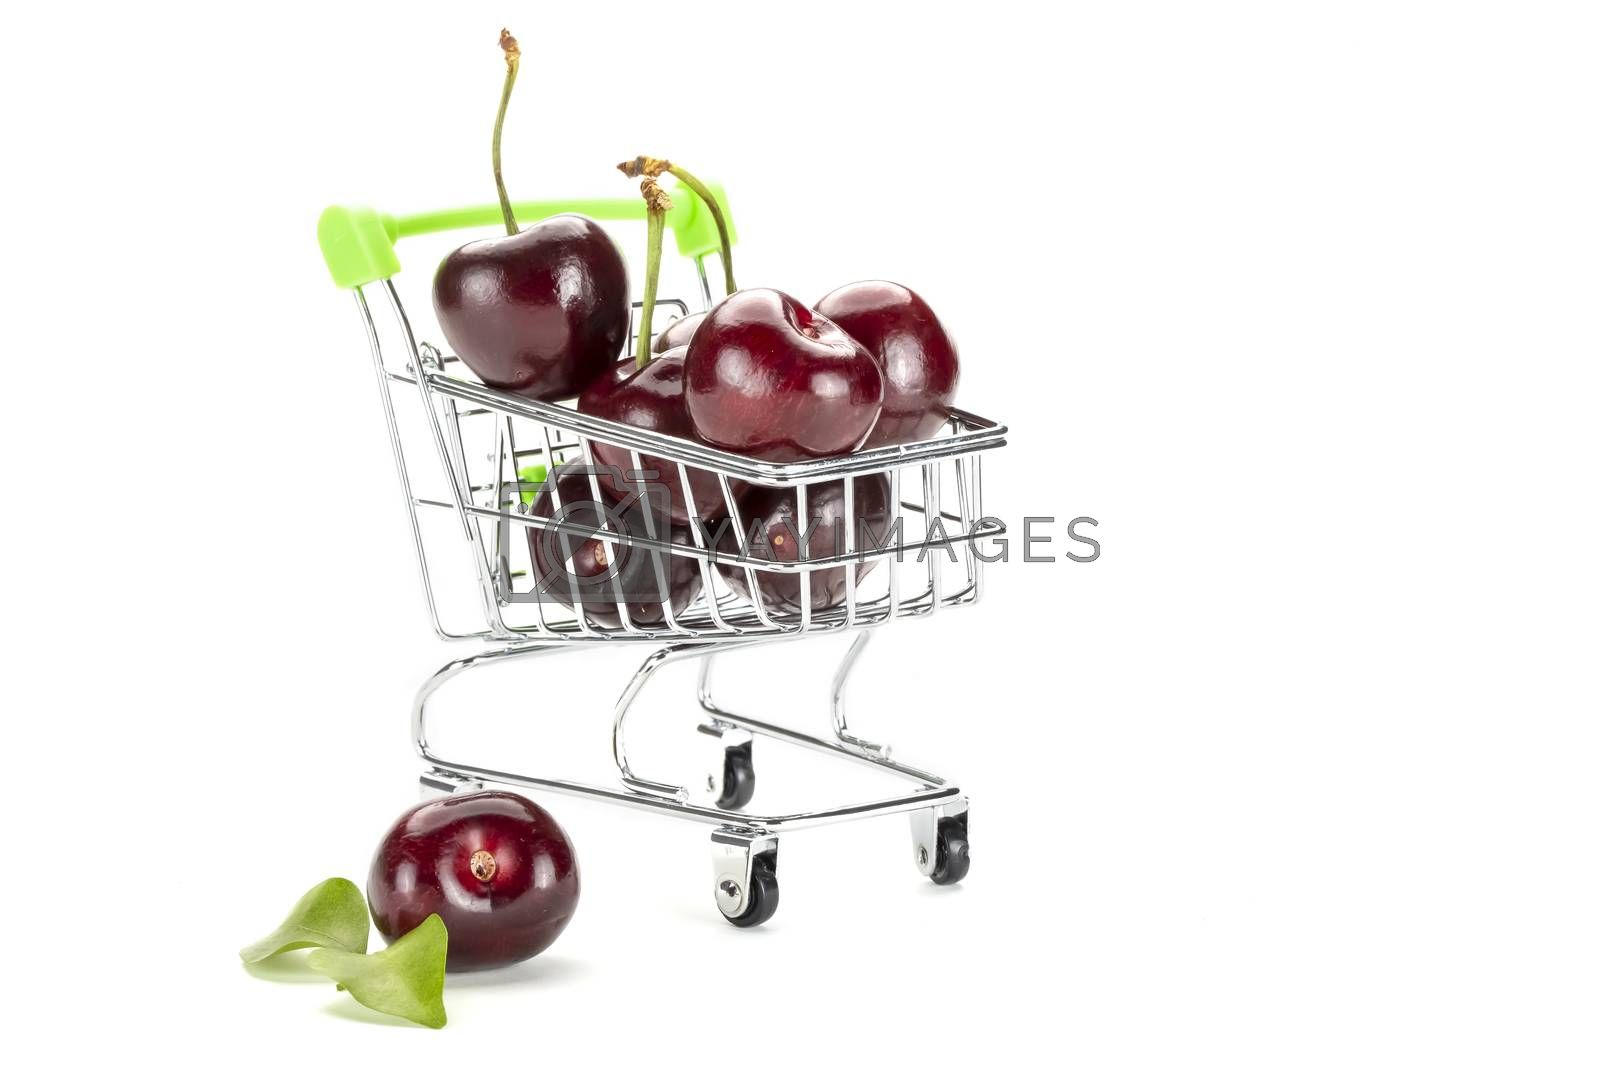 A bunch of dark red fresh cherries on a toy shopping cart. Isolated on white background.